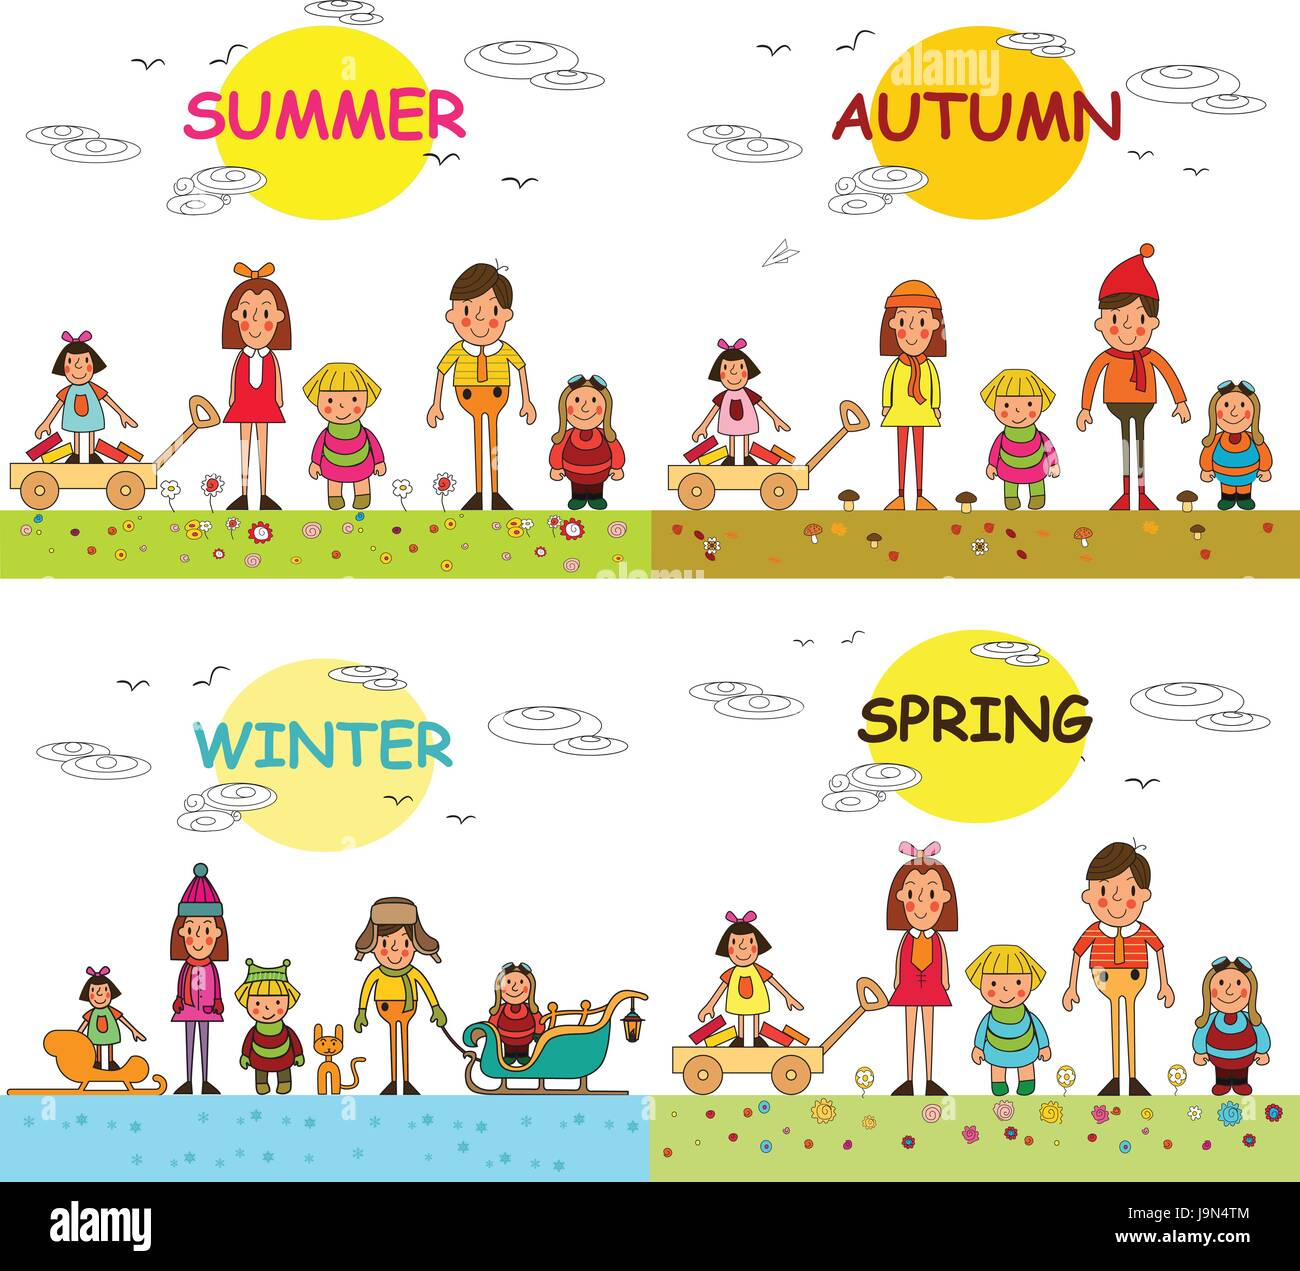 Four seasons - spring, summer, autumn, winter- happy kids isolated on white background. Vector illustration - Stock Image